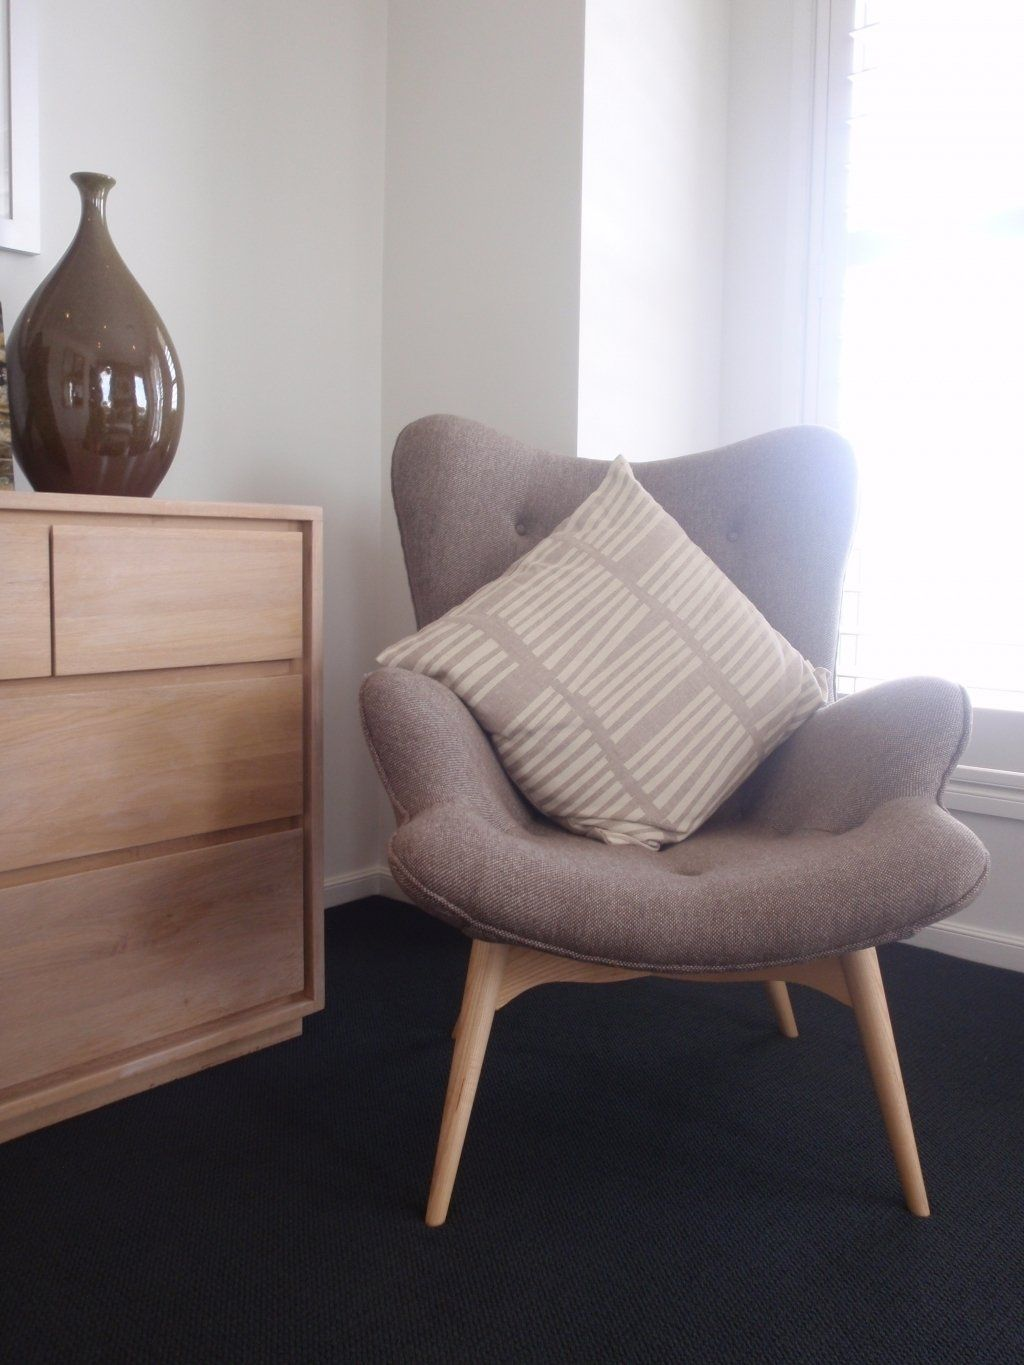 Smart buy for small comfy chair - yonohomedesign.com ... on Comfy Bedroom  id=30584